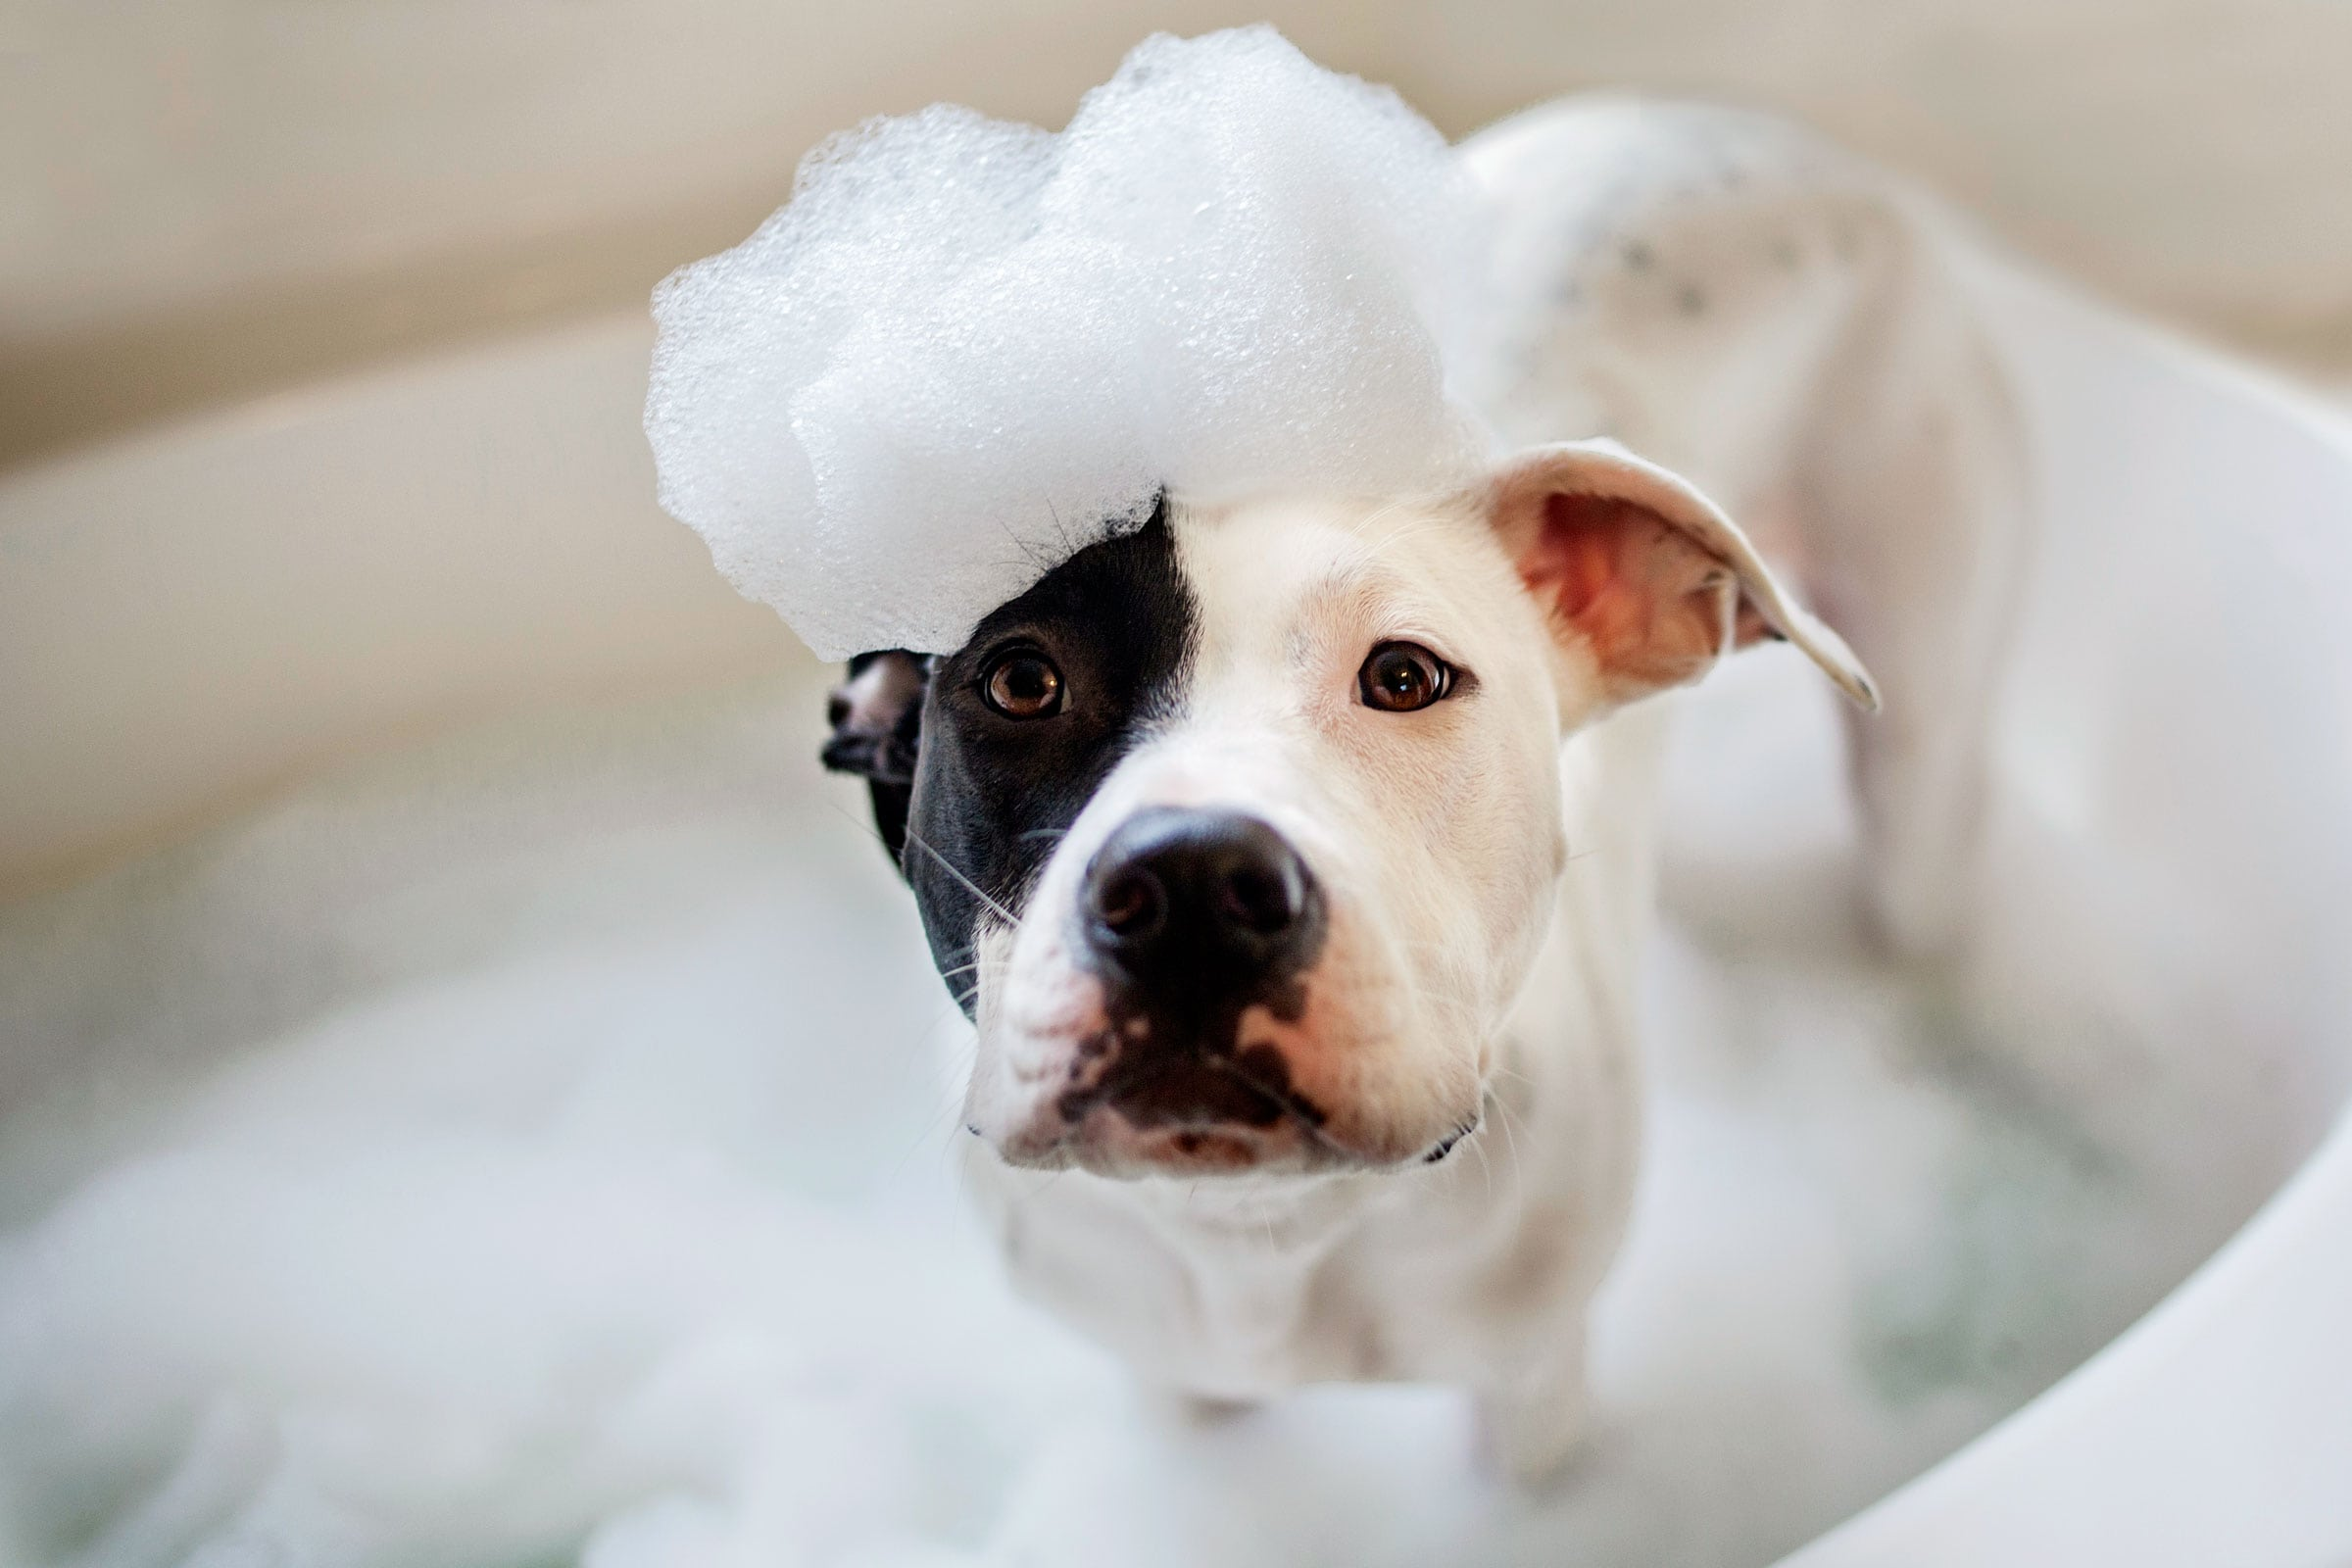 Best Dog Shampoo For Smell Review by www.puppyurl.com